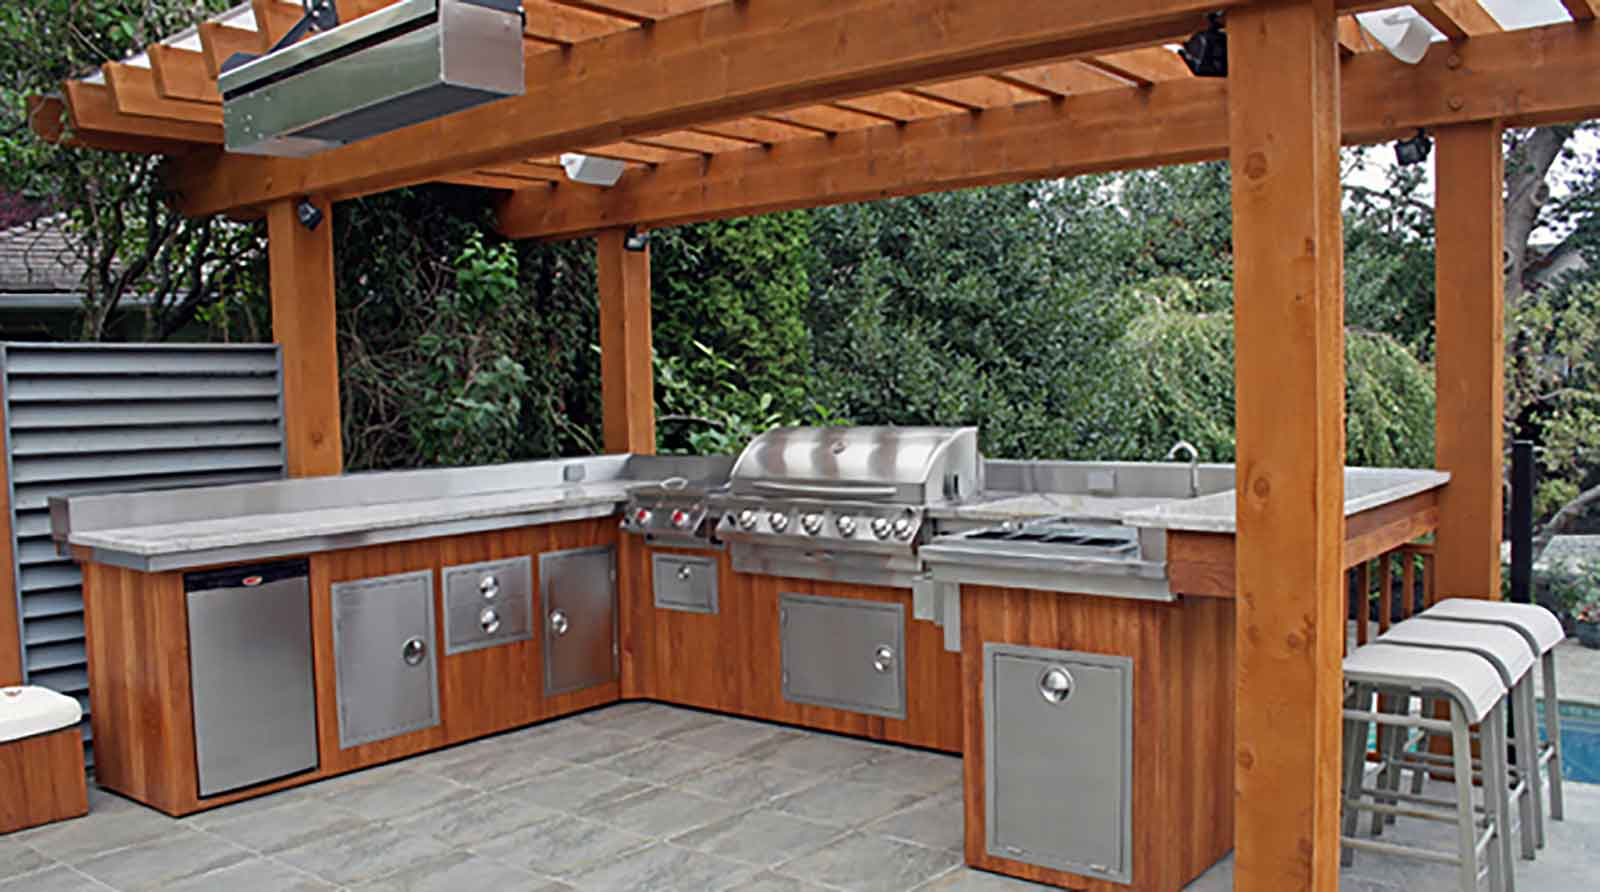 Custom outdoor kitchen with built-in appliances